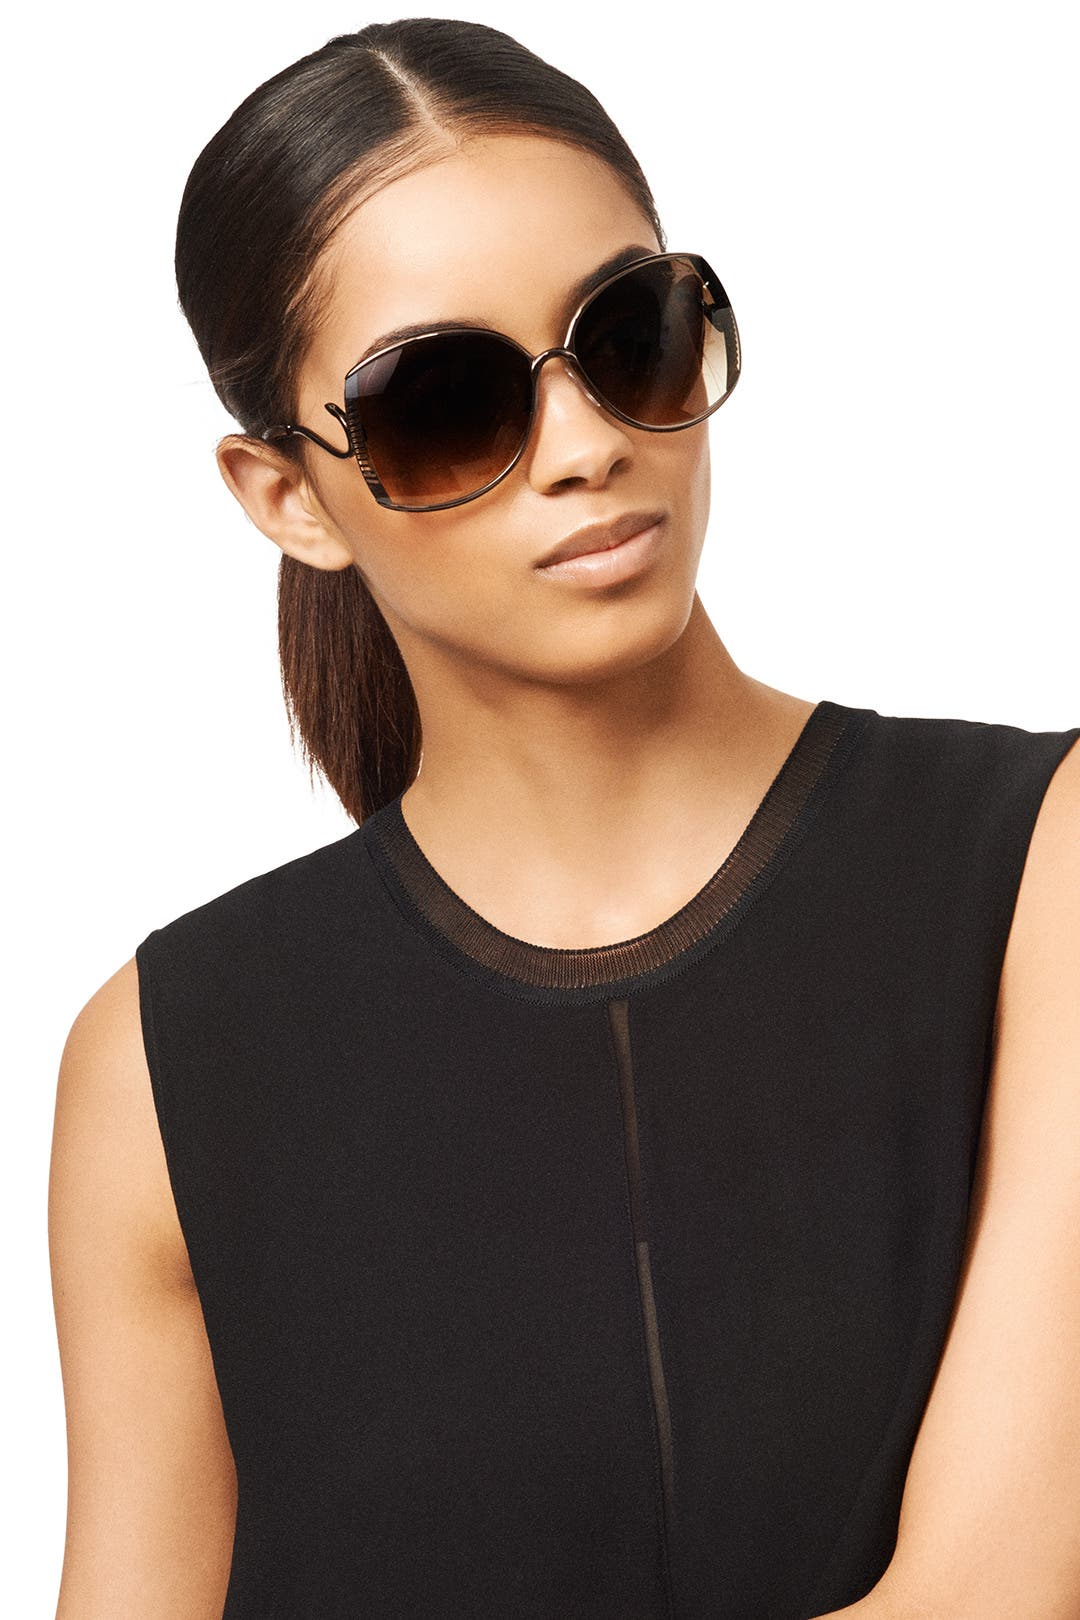 La Brea Sunglasses by Roberto Cavalli Accessories